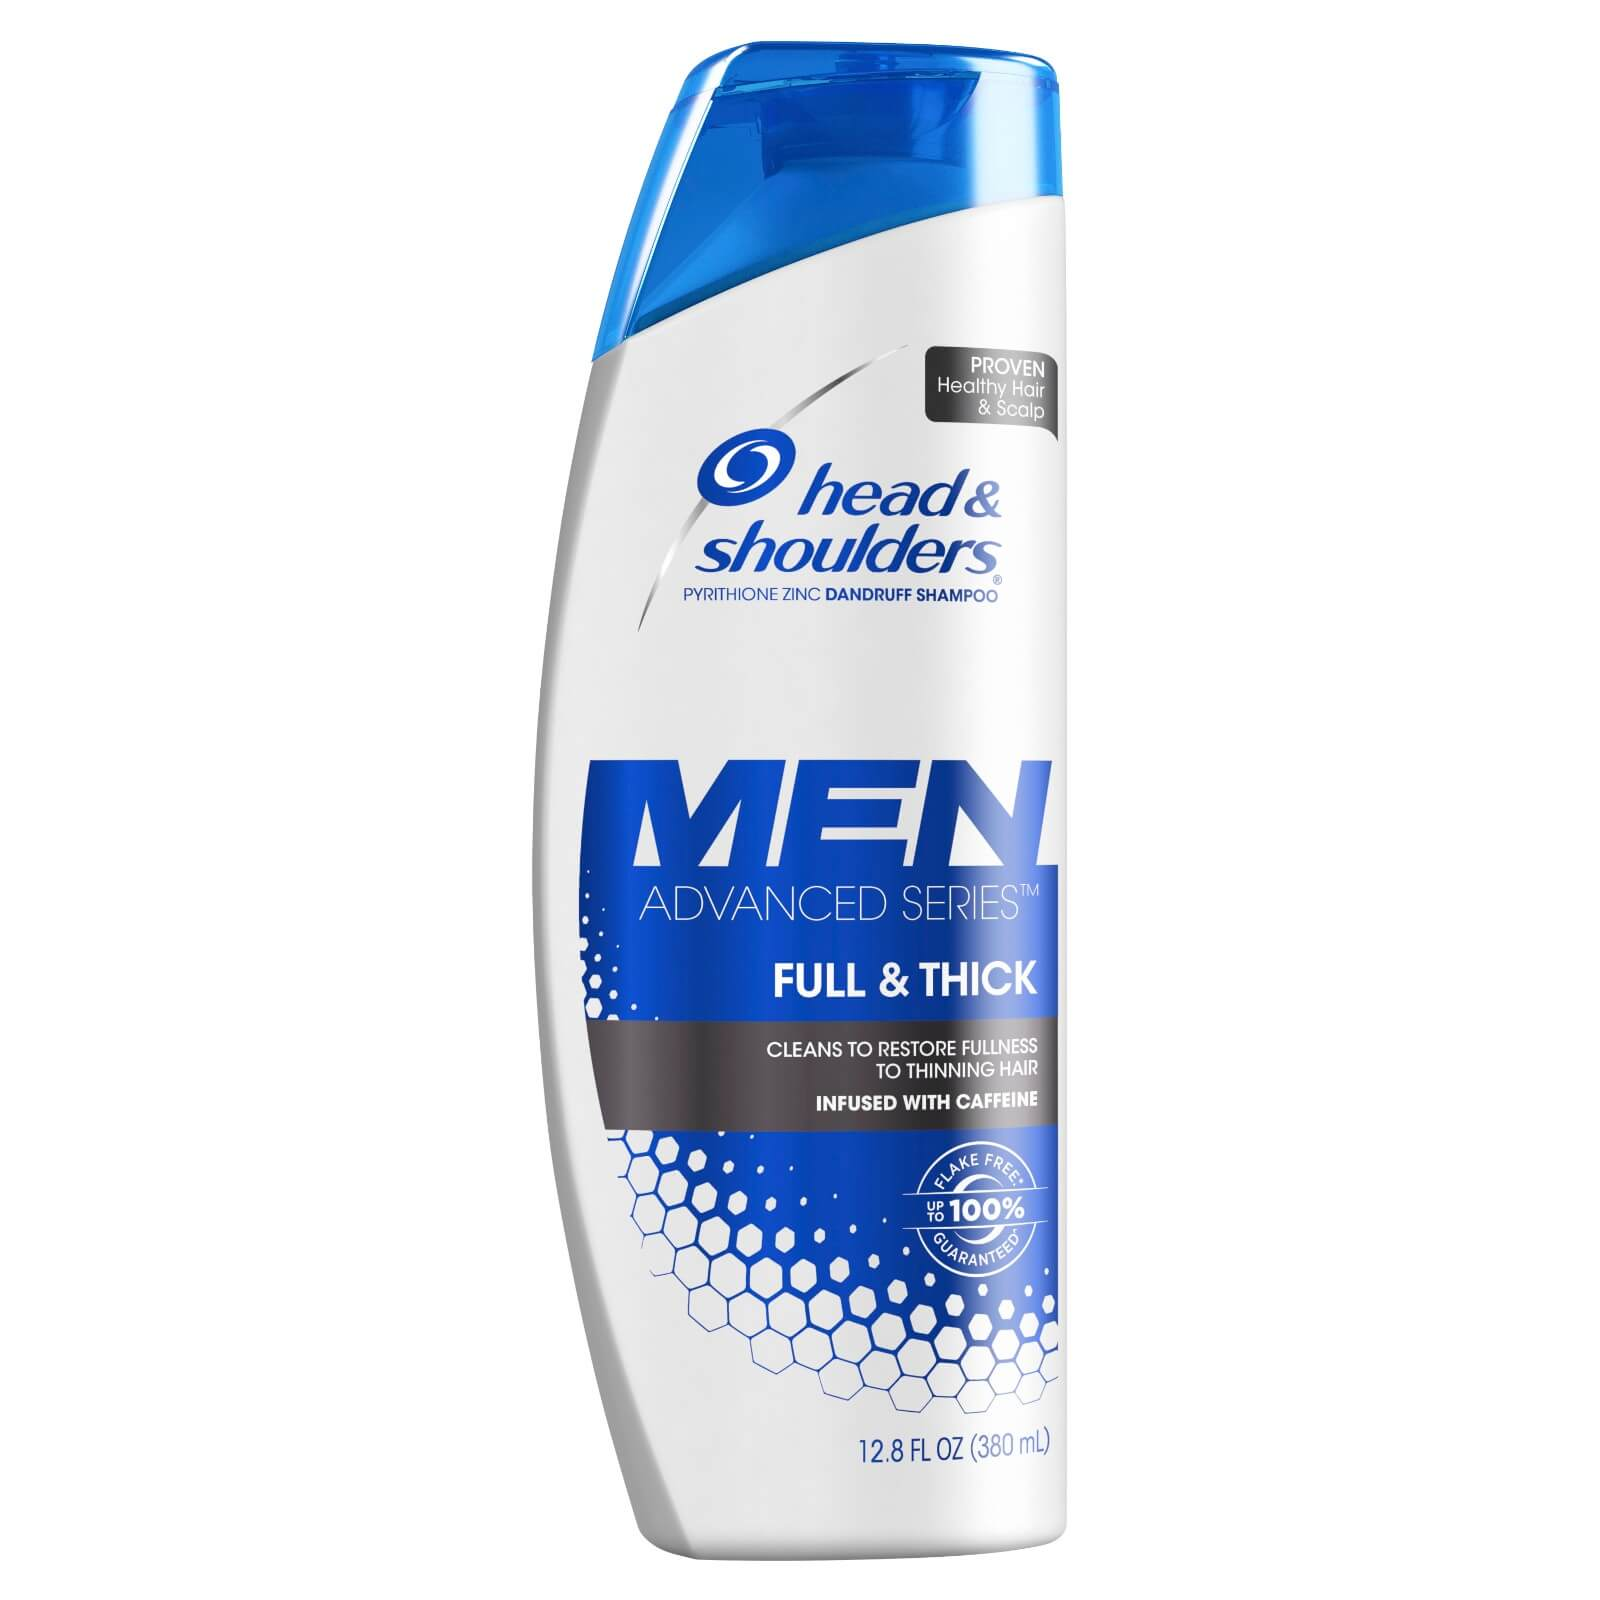 Full & Thick Shampoo for Men